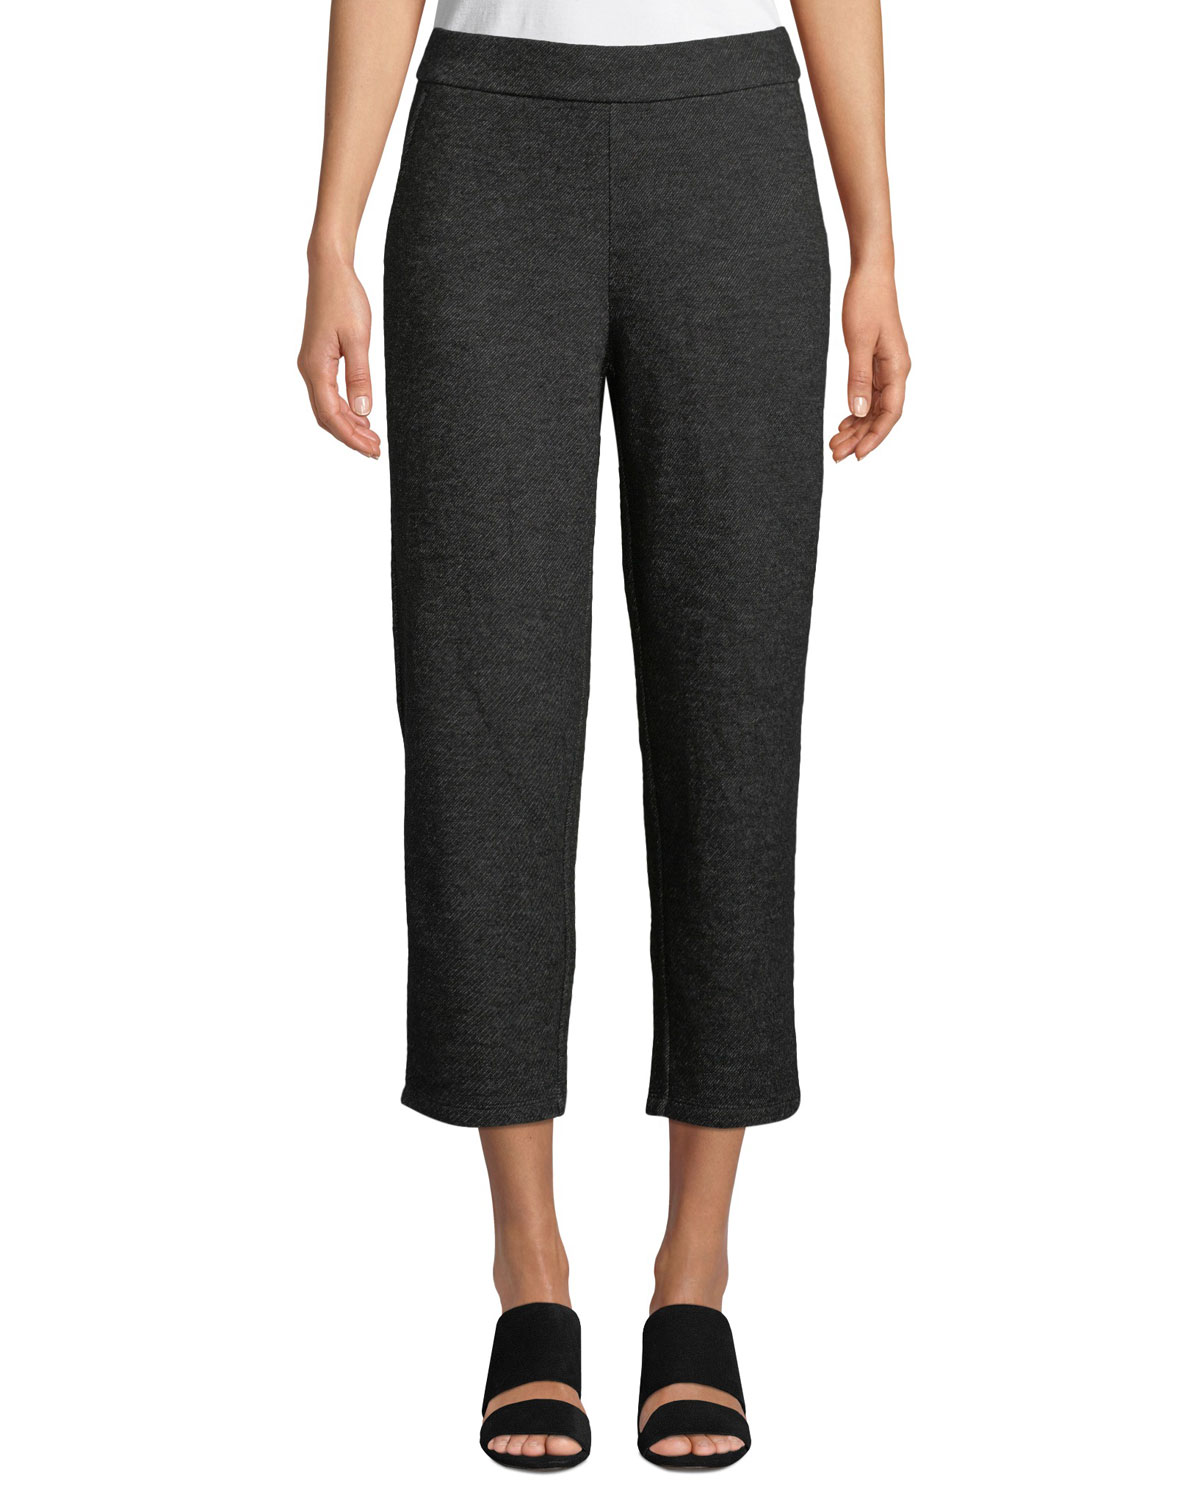 Melange Knitted Twill Wool Crop Pants, Charcoal